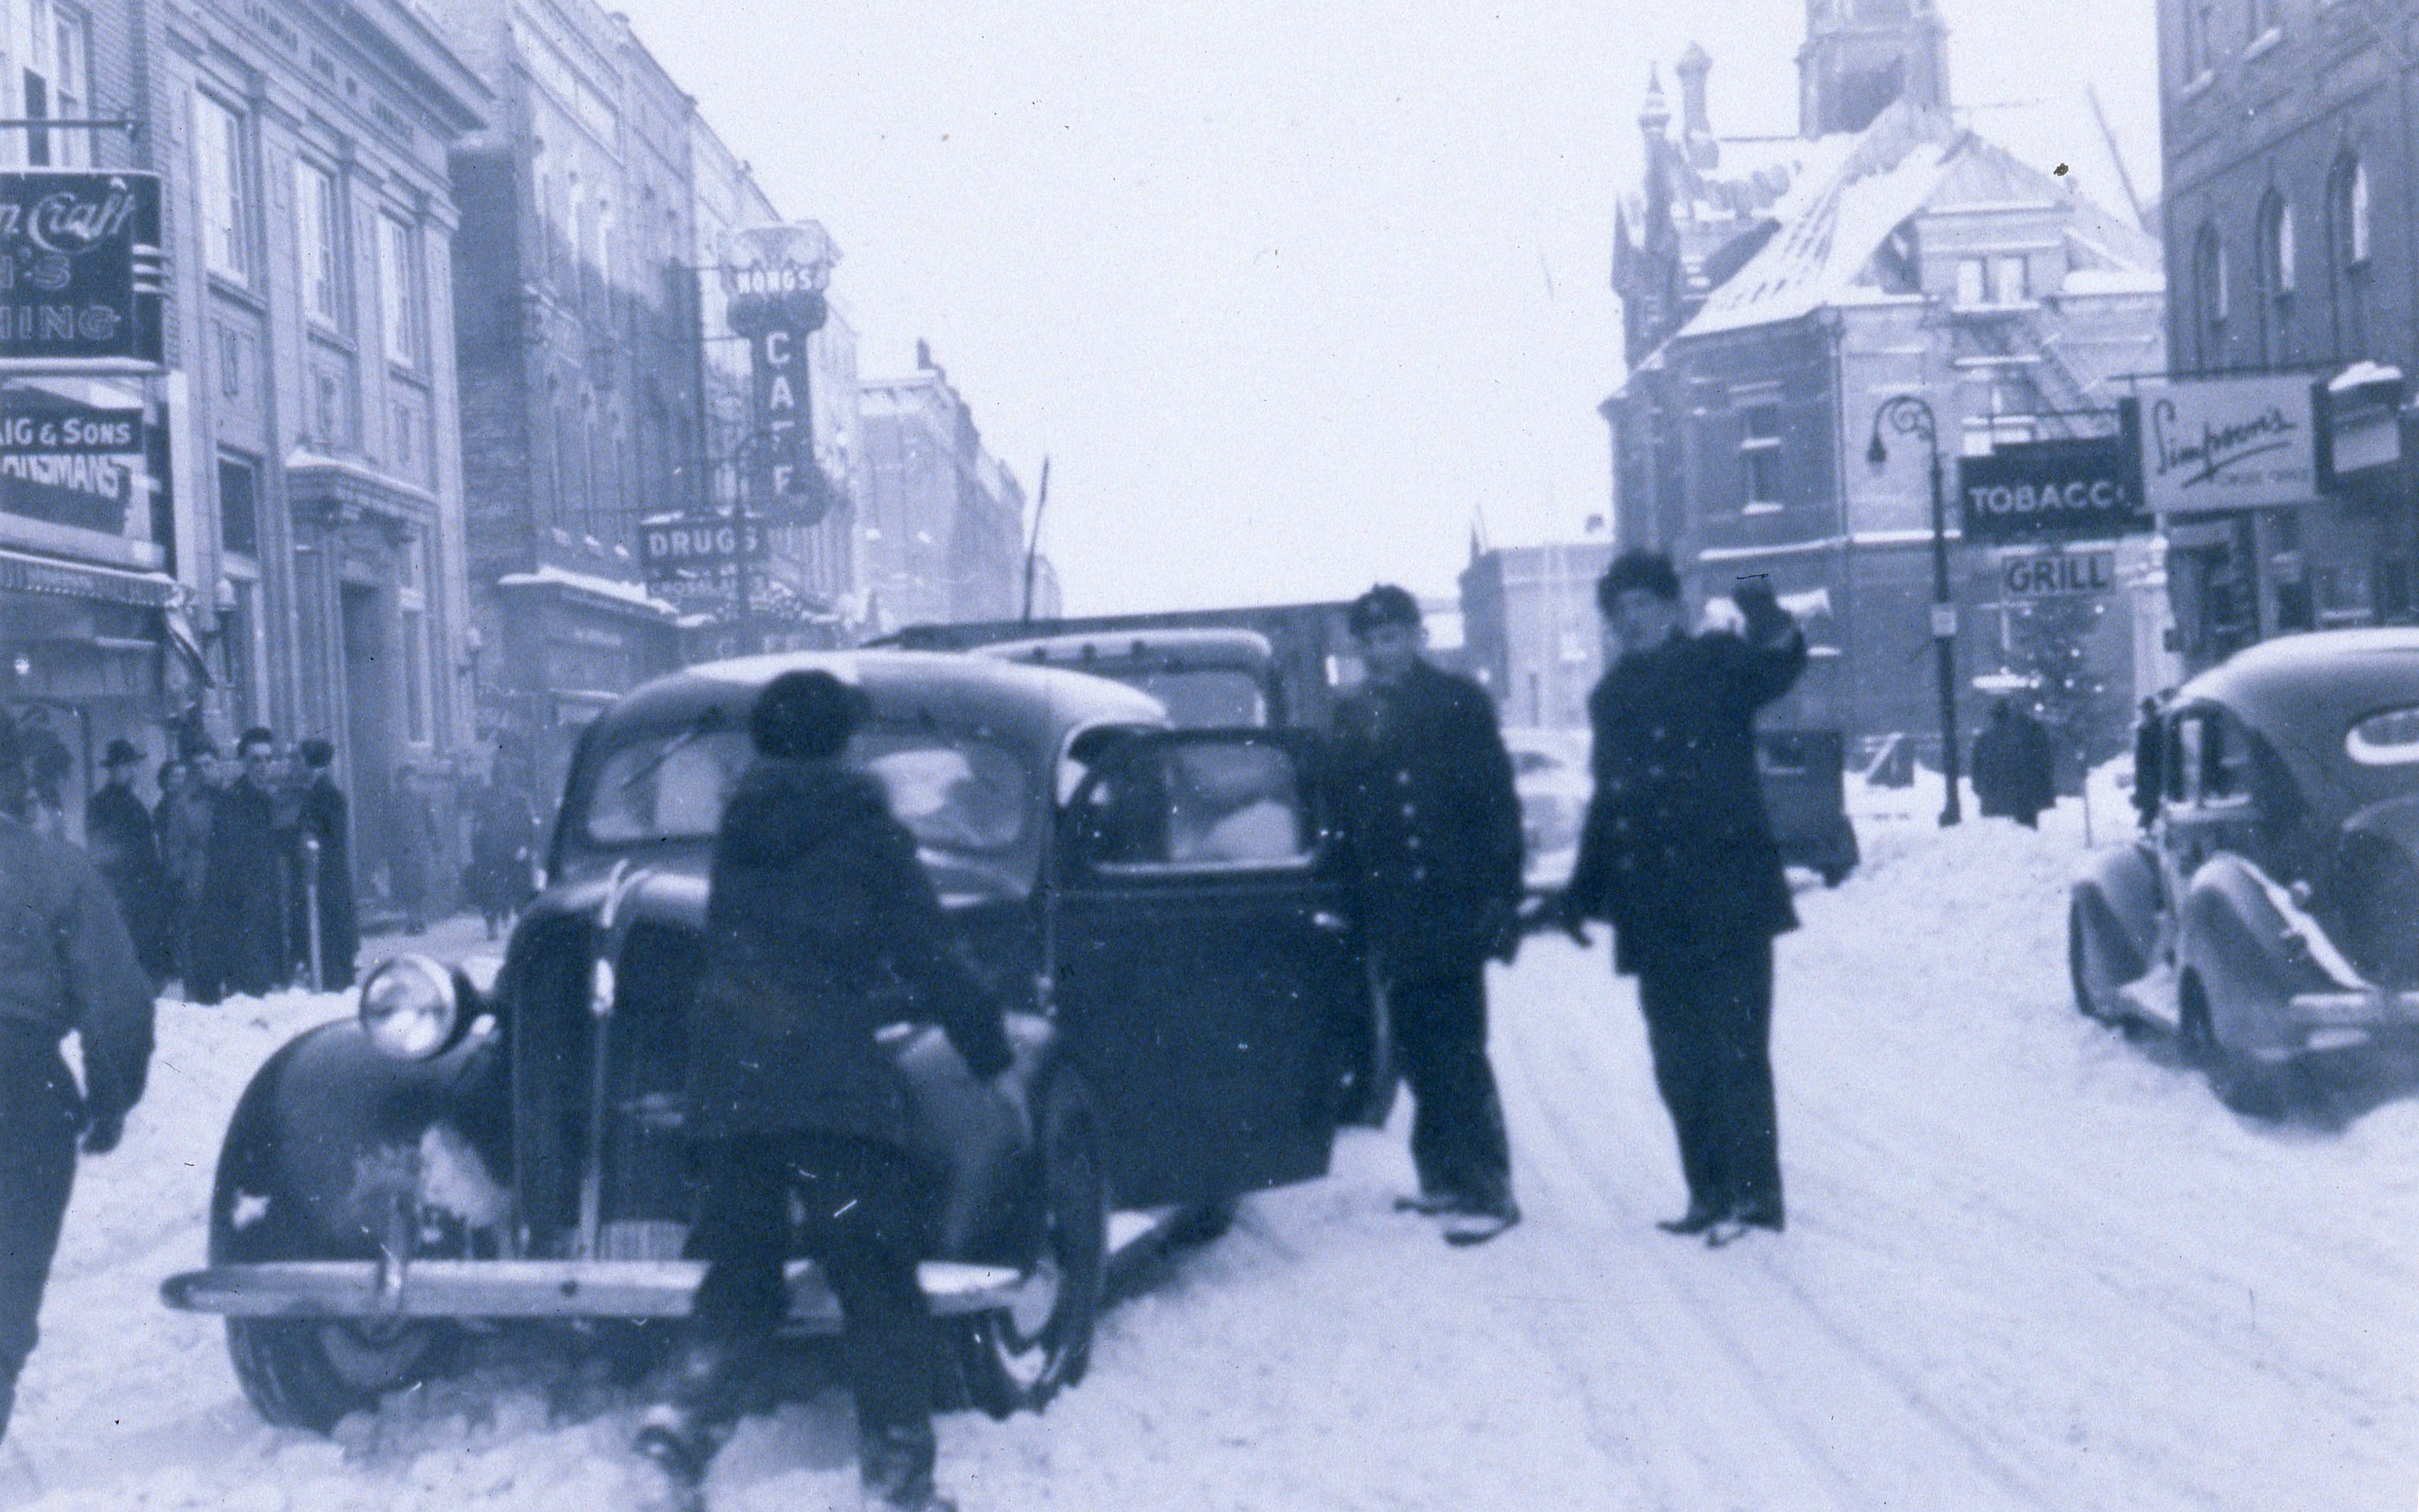 From Barrie with Love Part VI: Wartime Letters from a Briton in Barrie